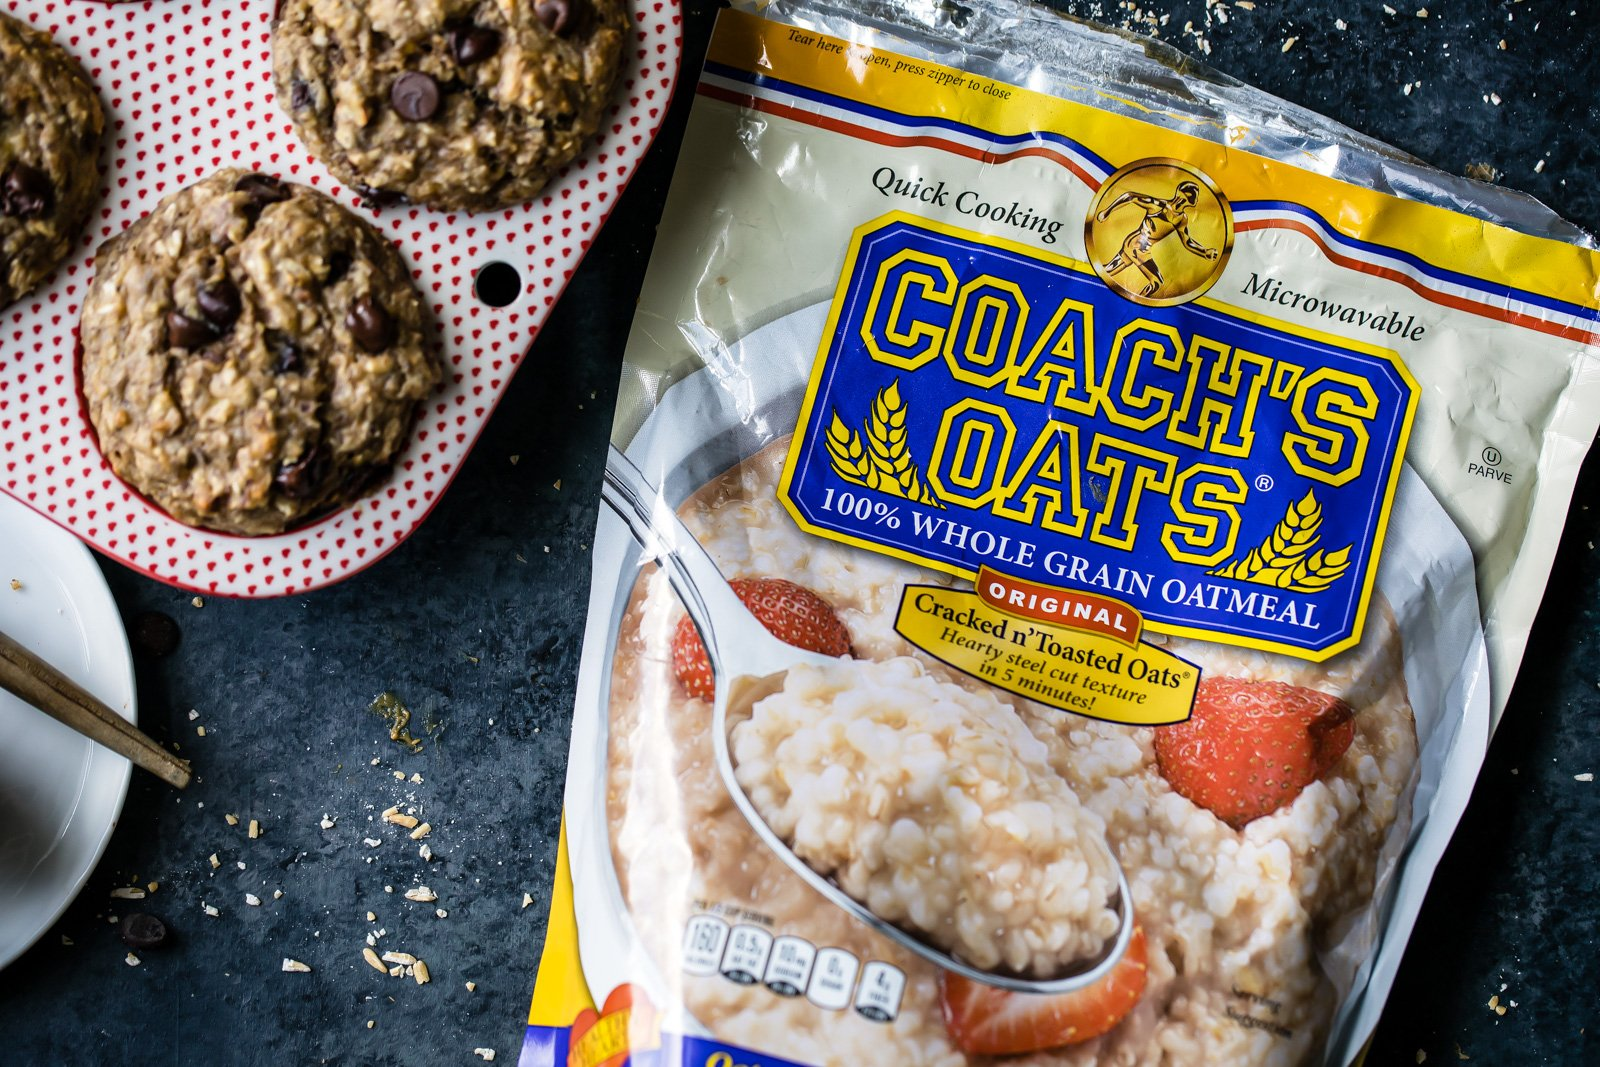 Fluffy and delicious banana oatmeal muffins made with wholesome ingredients like Coach's Oats, Greek yogurt, and flaxseed meal. They're perfect for a quick breakfast or snack on-the-go!